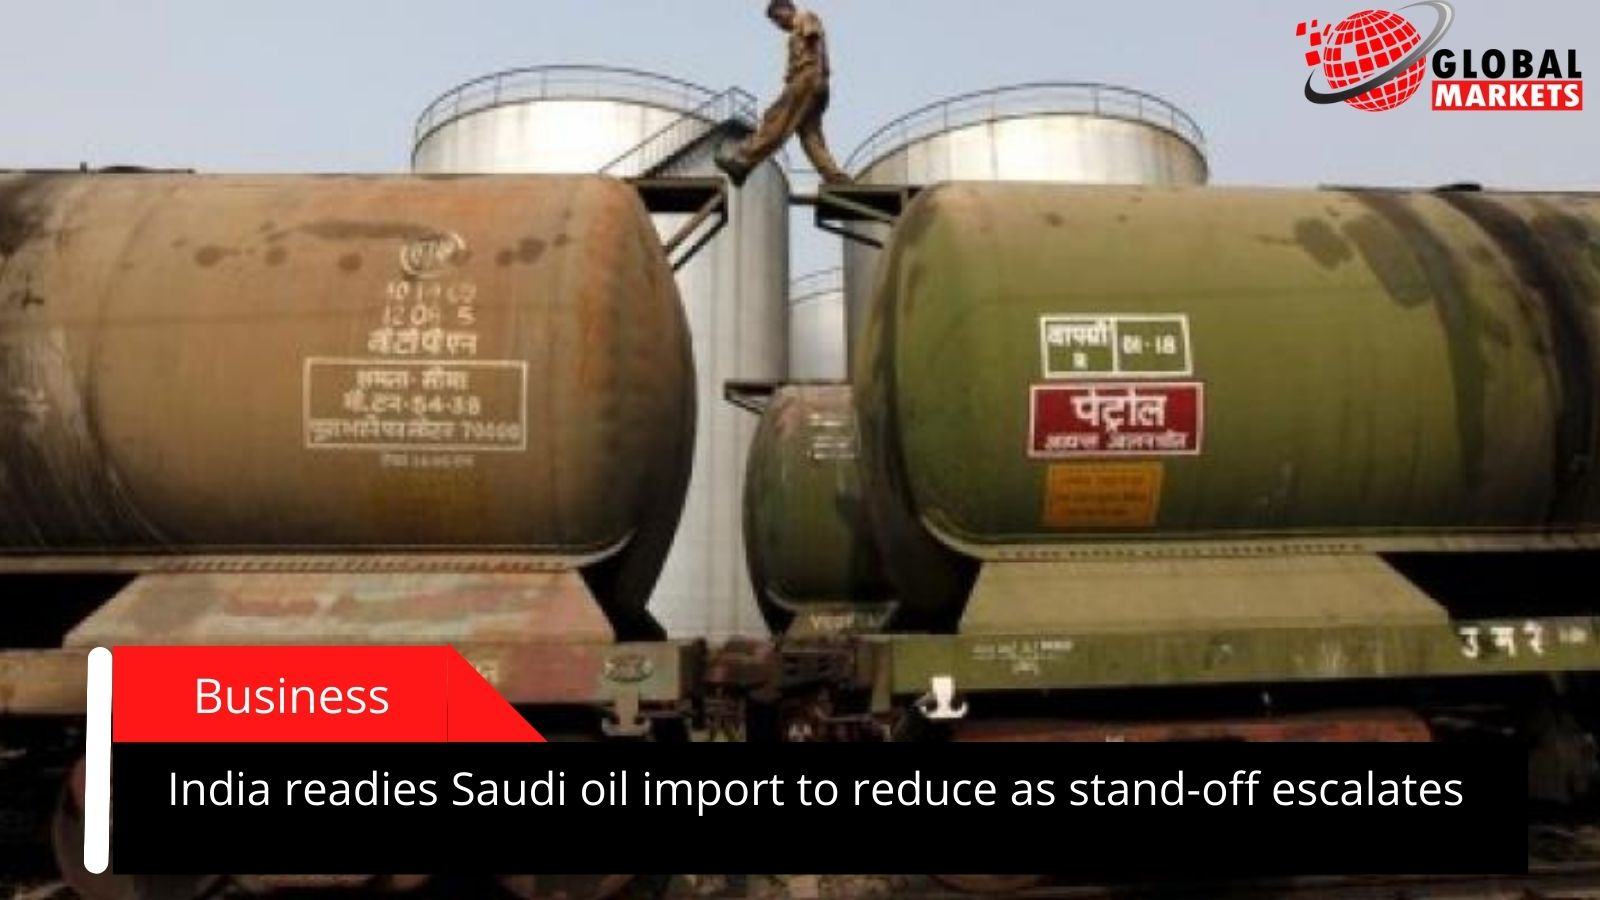 India readies Saudi oil import to reduce as stand-off escalates